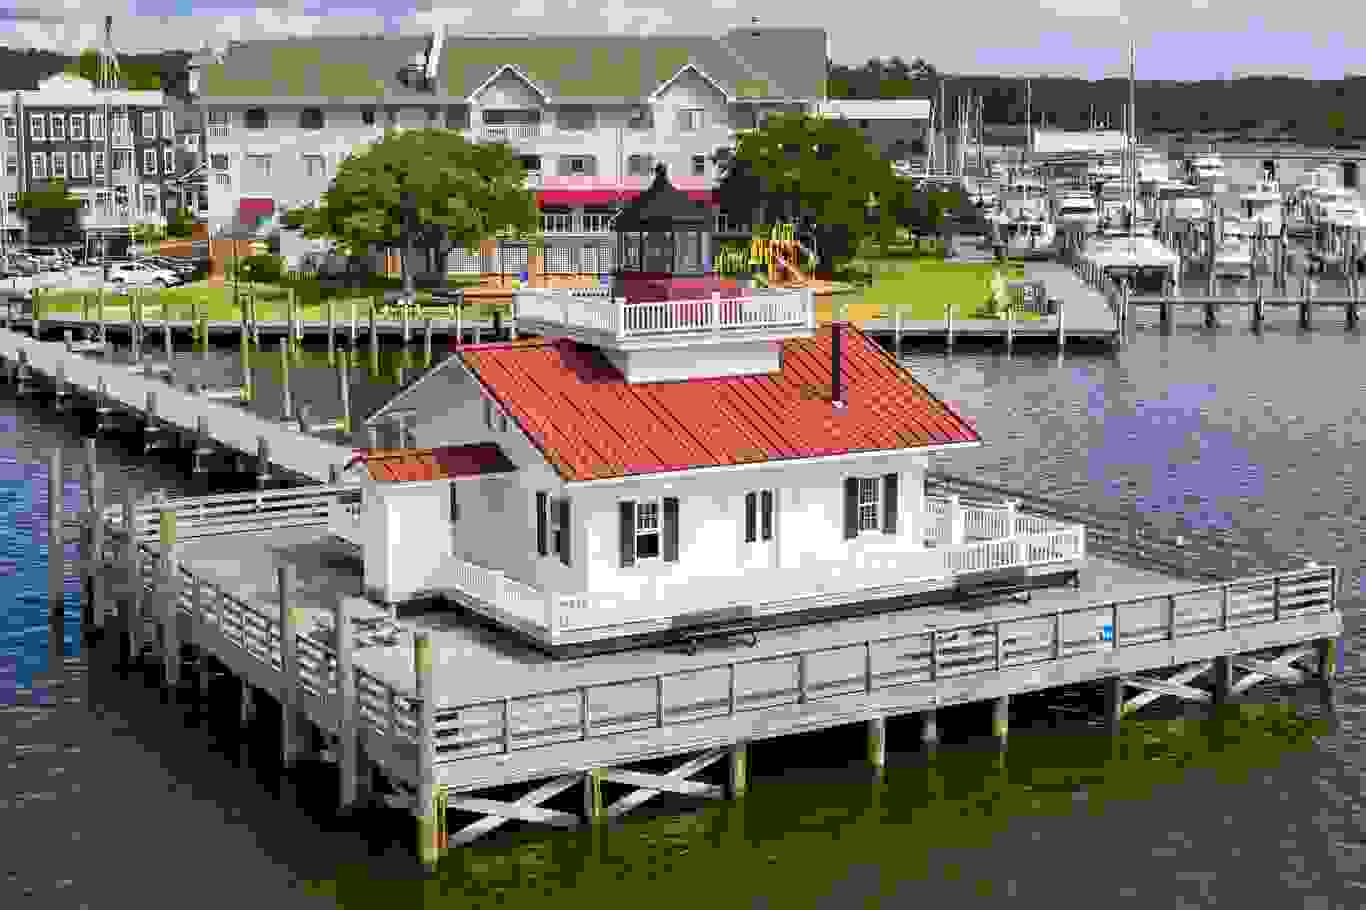 Contact us in Manteo on Roanoke Island in the Outer Banks